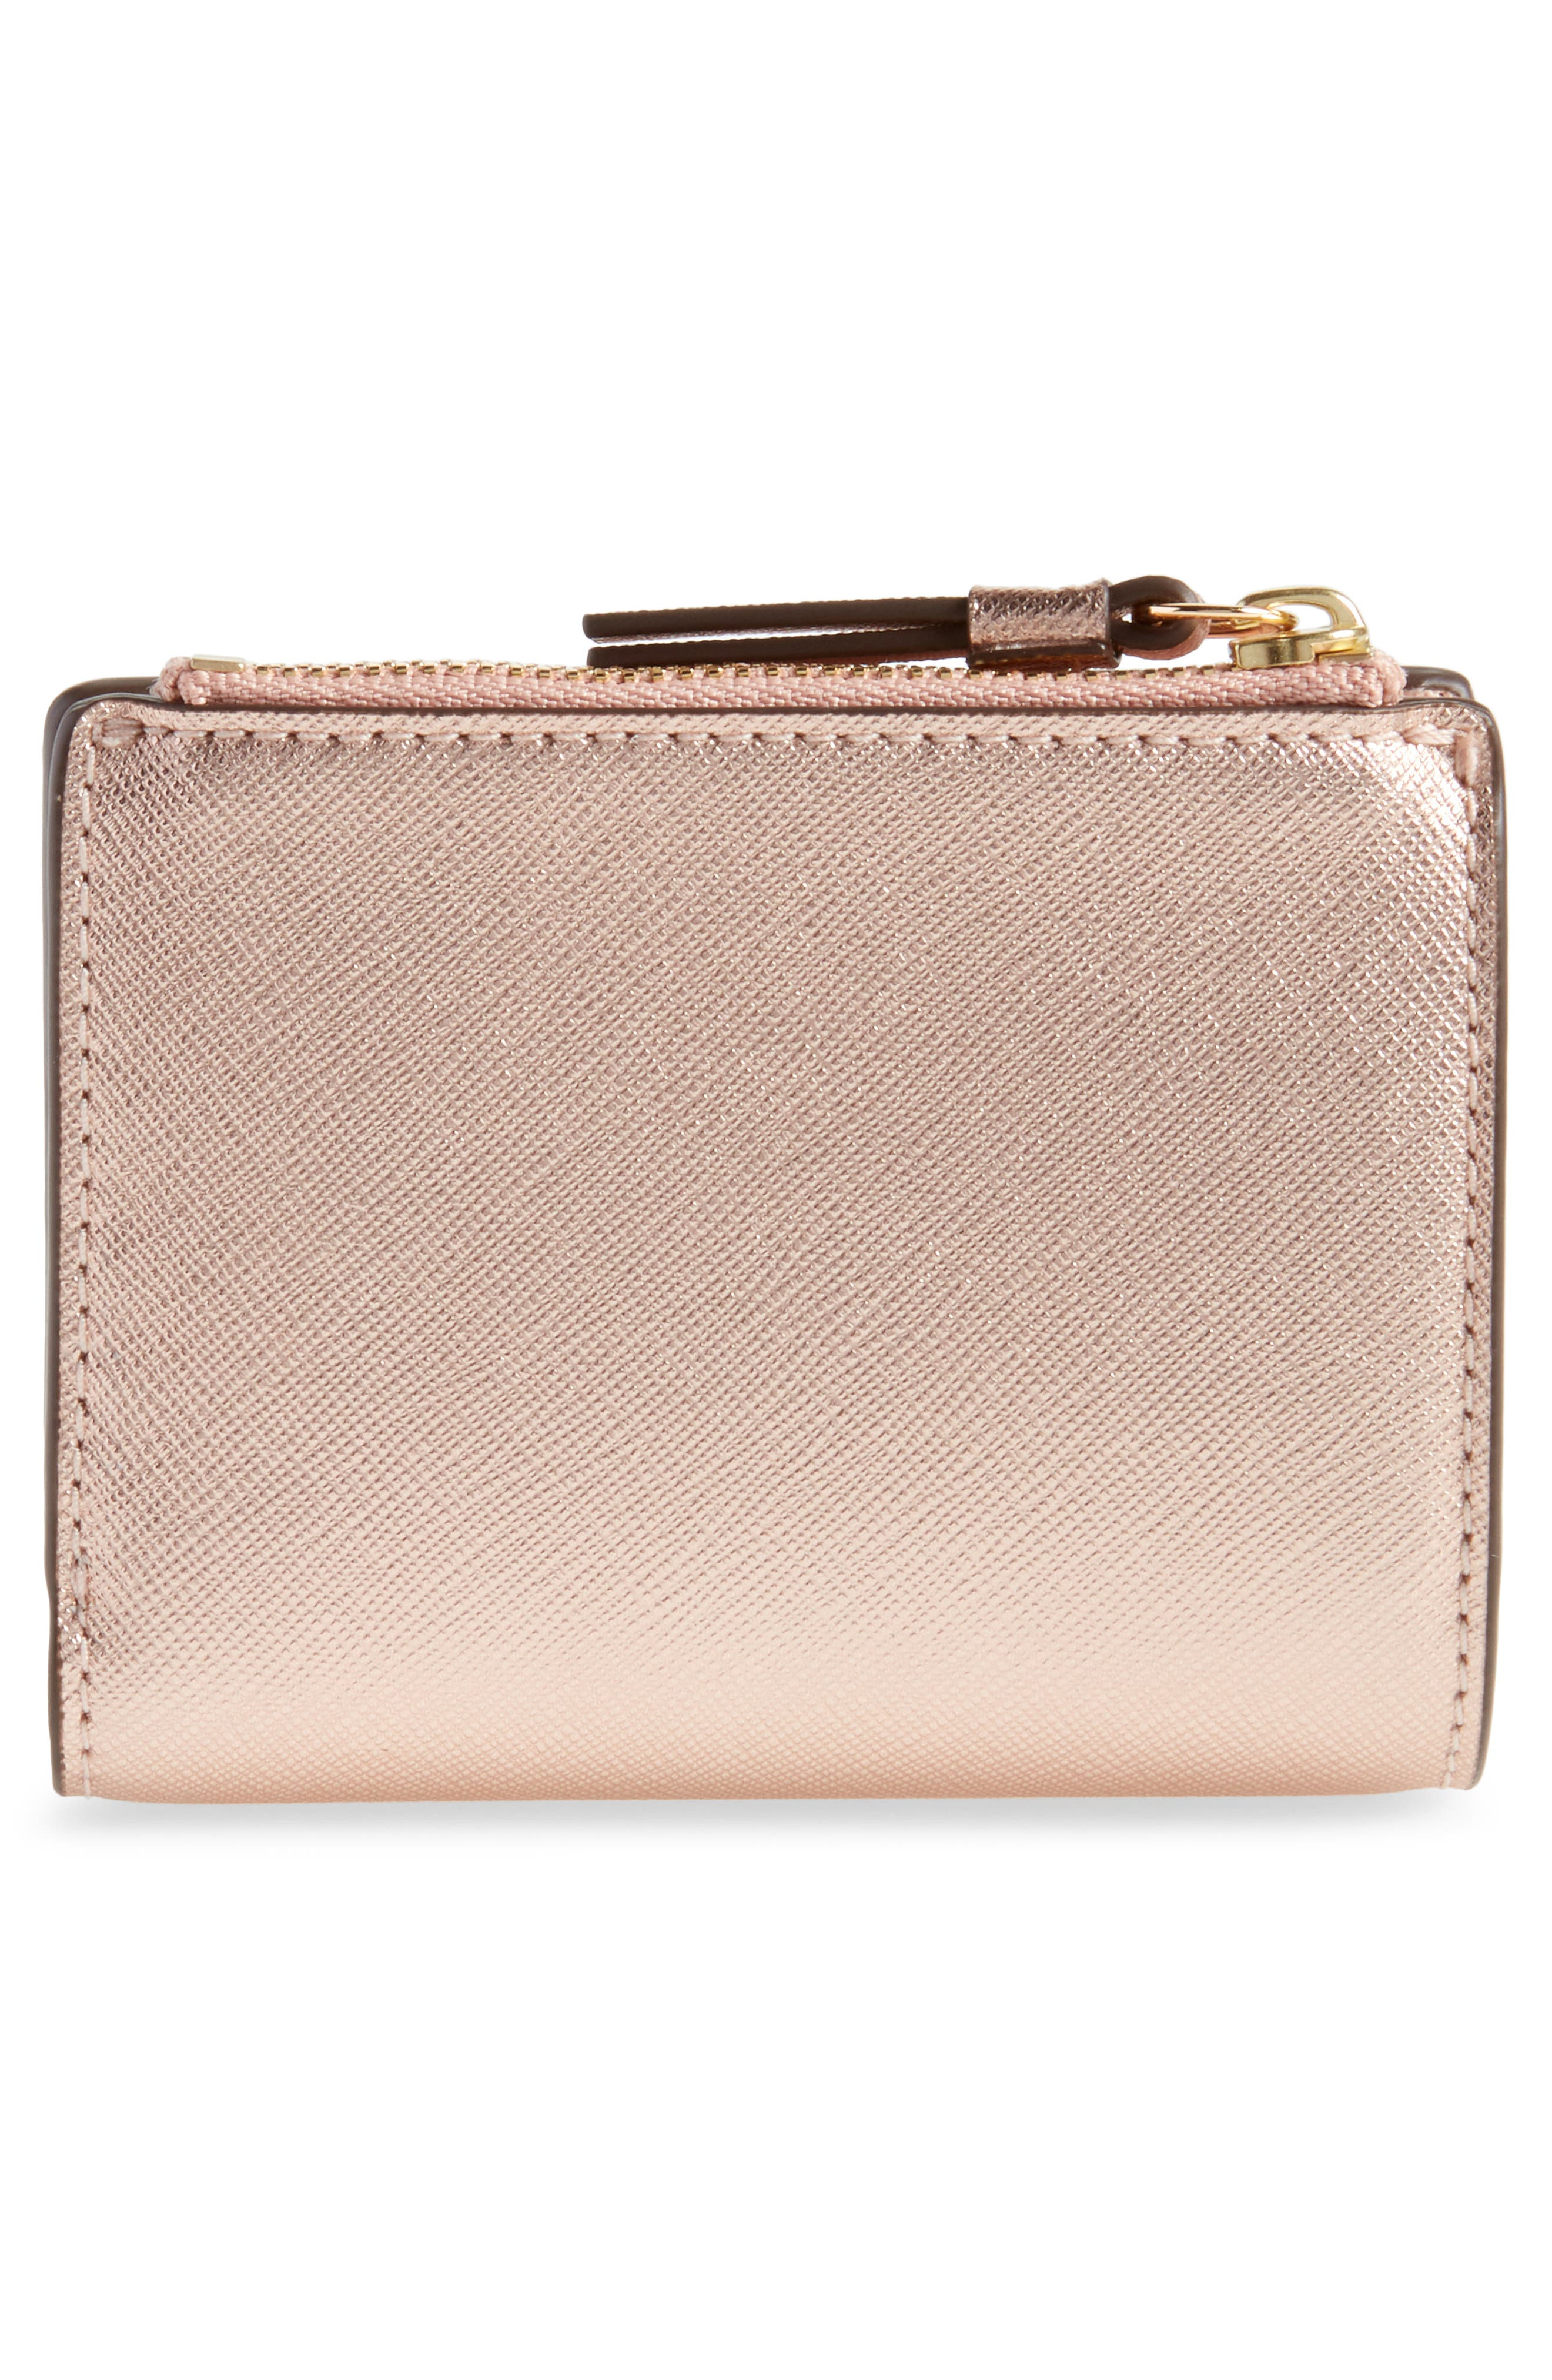 Robinson Metallic Leather Bifold Wallet,                             Alternate thumbnail 4, color,                             650